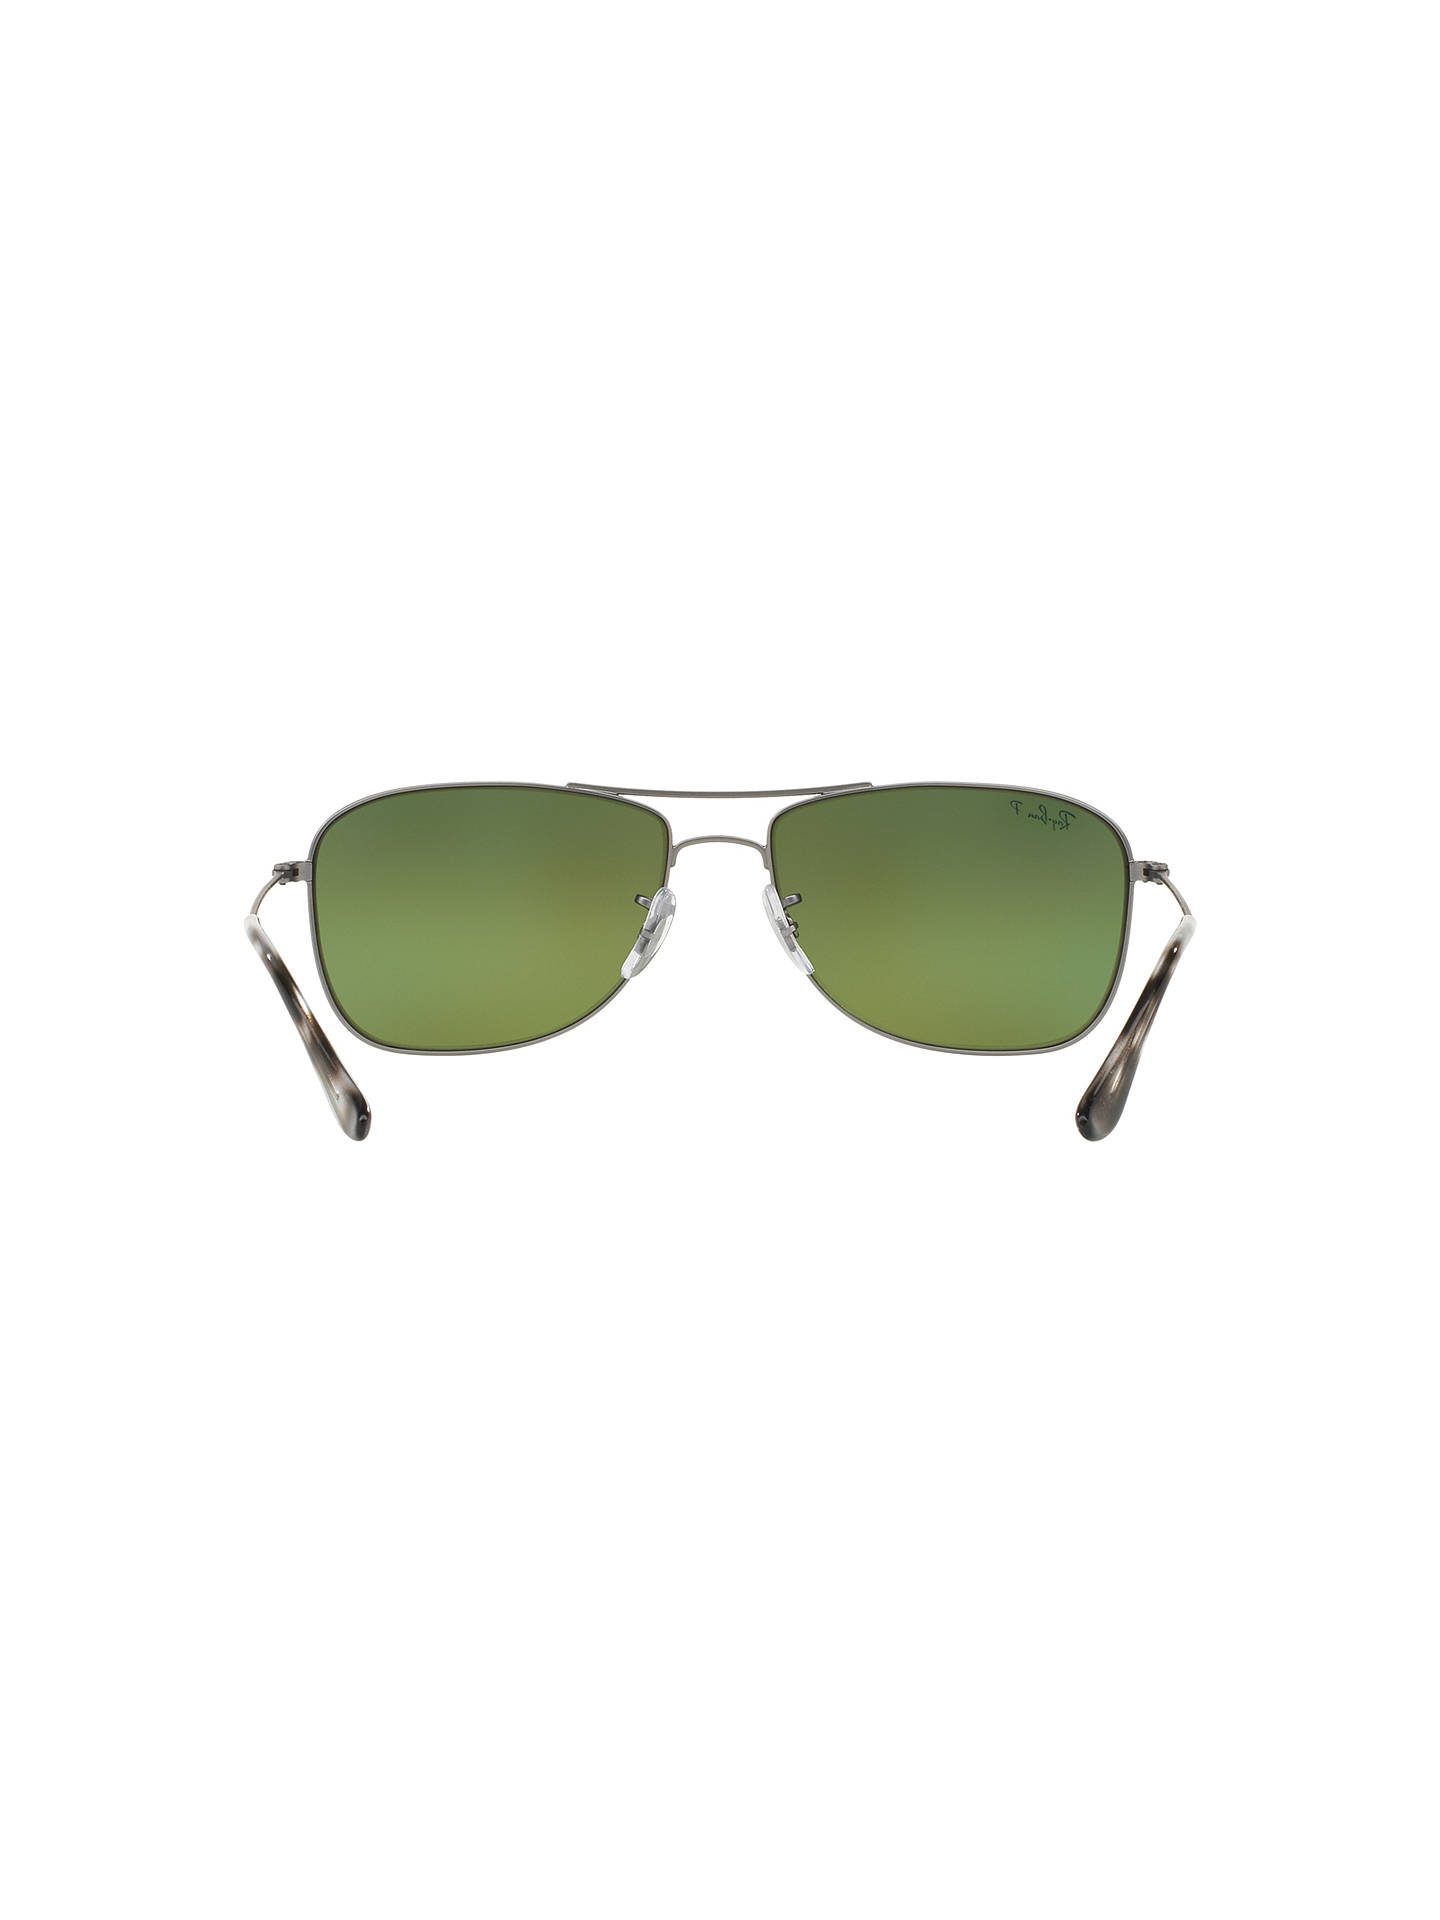 BuyRay-Ban RB3543 Polarised Aviator Sunglasses, Grey/Mirror Green Online at johnlewis.com